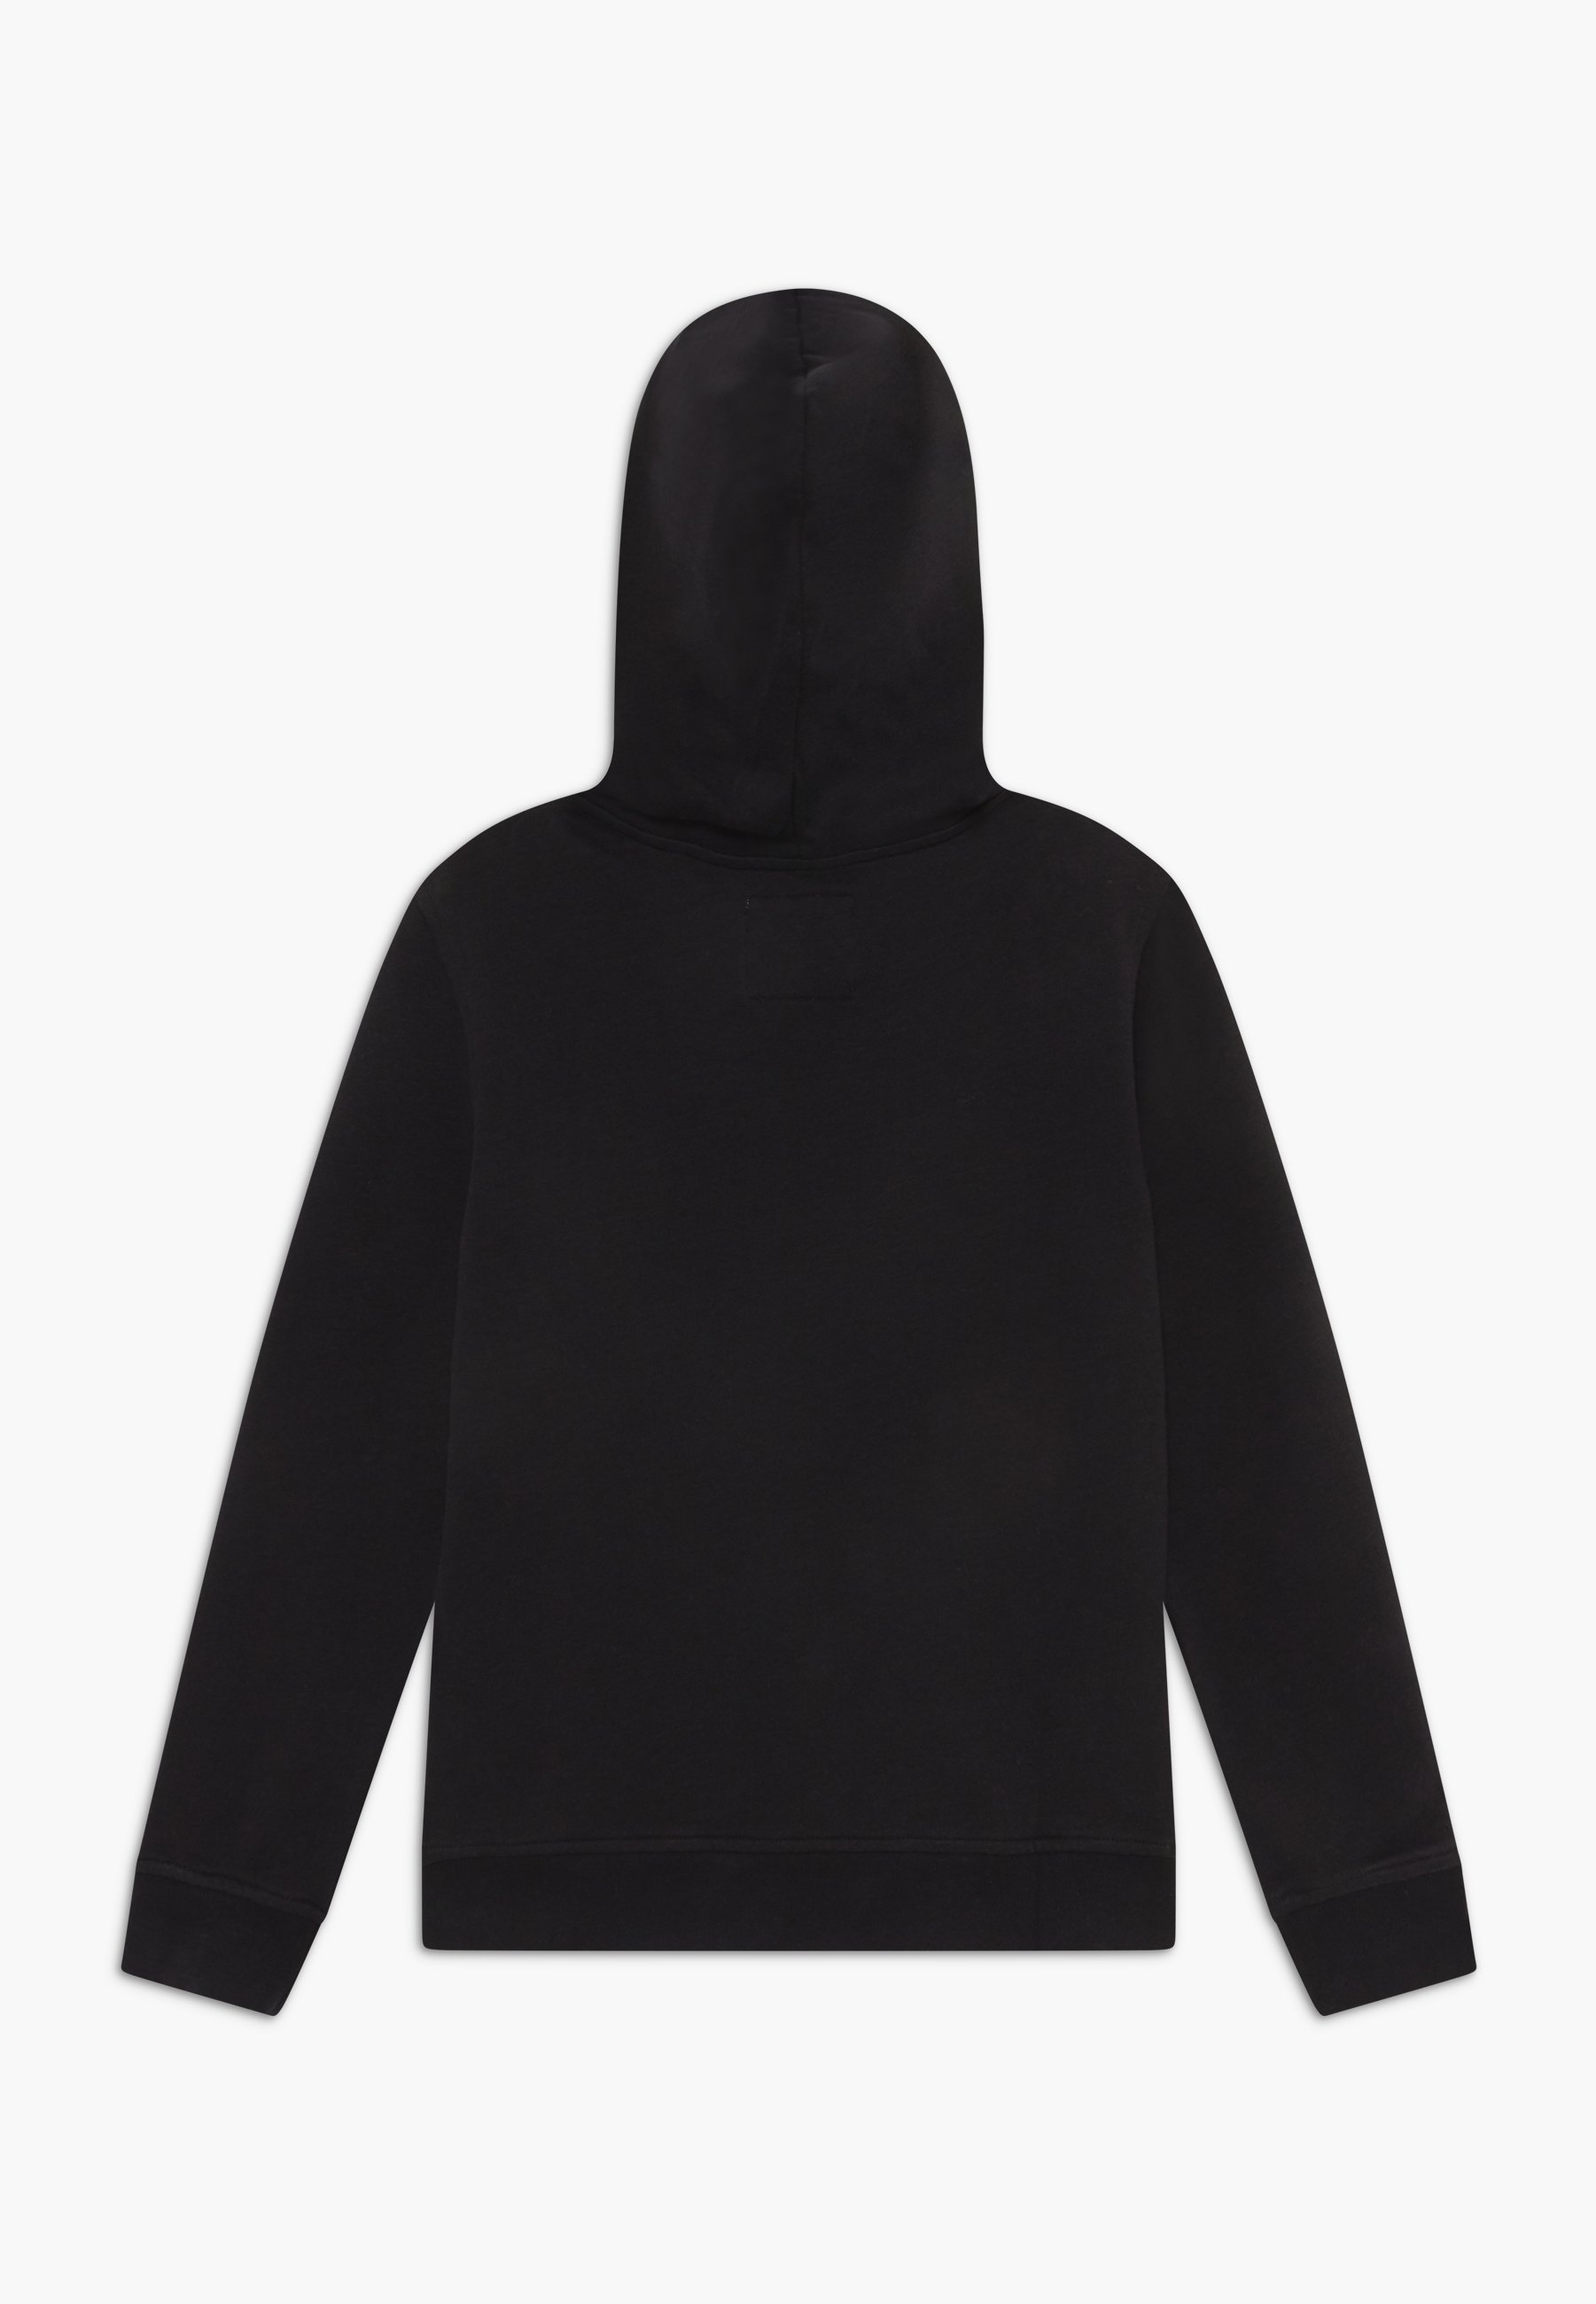 Abercrombie & Fitch Icon - Hoodie Black